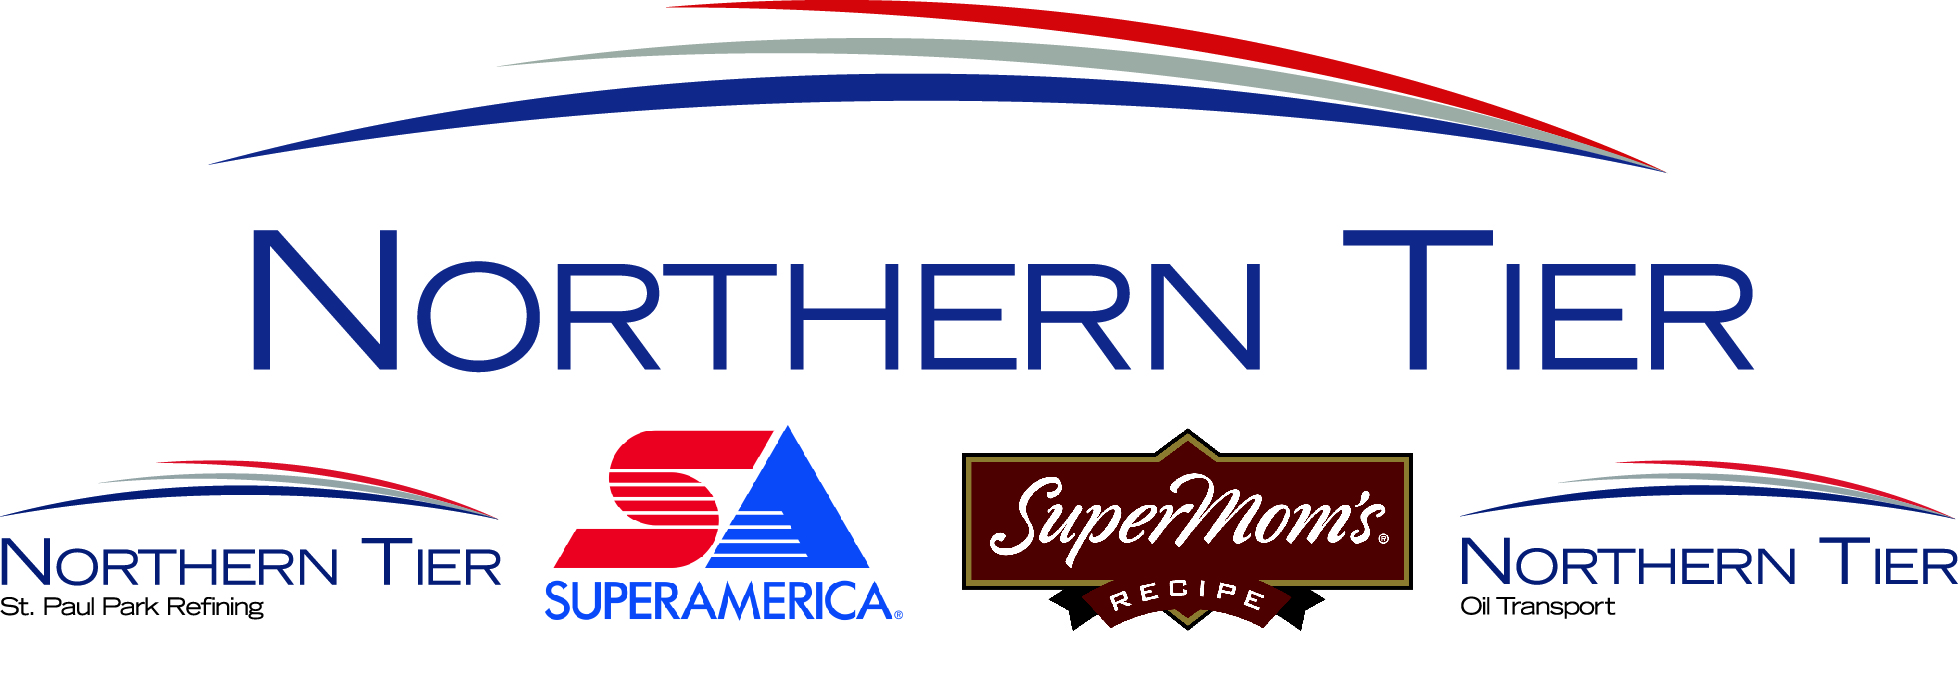 Northern Tier Logo FINAL.jpg